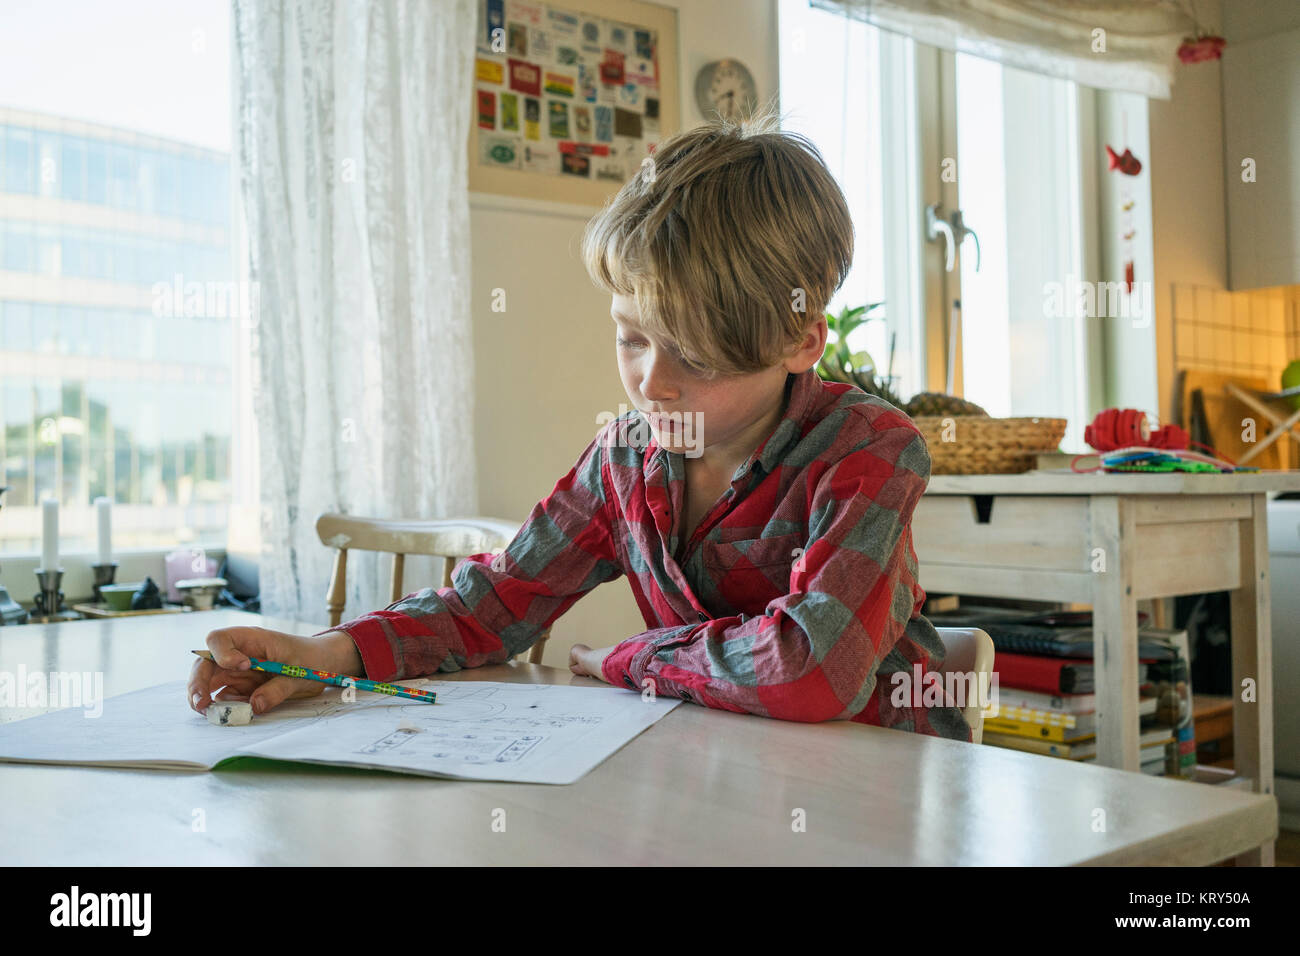 A young boy sitting at a table drawing - Stock Image